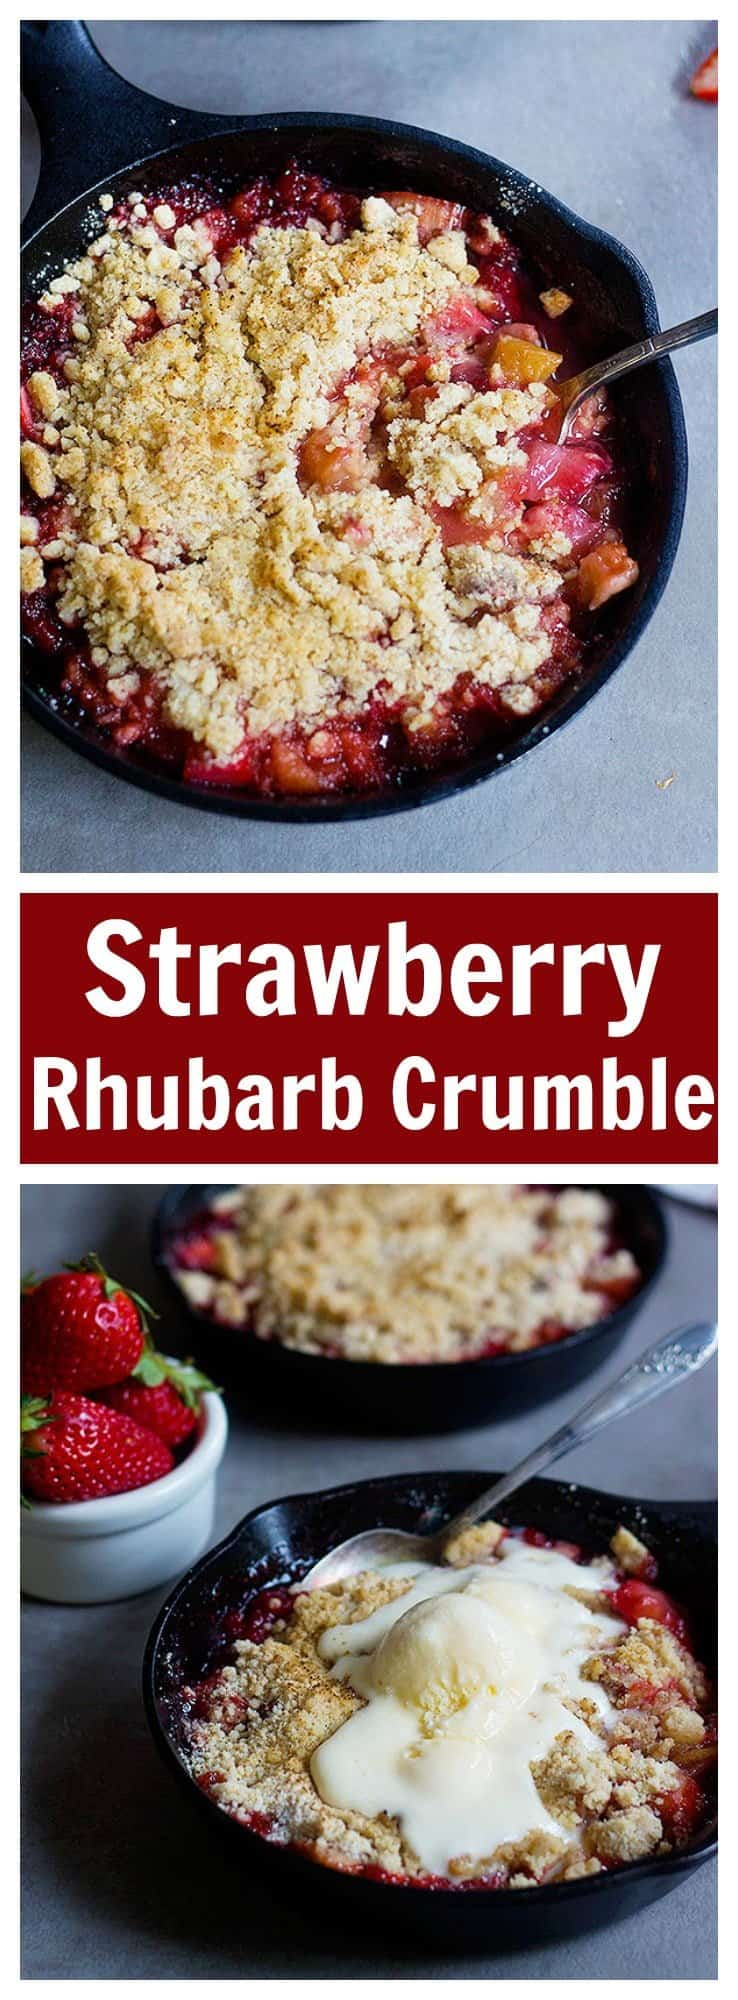 Strawberry Rhubarb Crumble is the ultimate spring dessert. Juicy strawberries and rhubarbs mixed with sugar and topped with a good crumble make this dessert delicious!